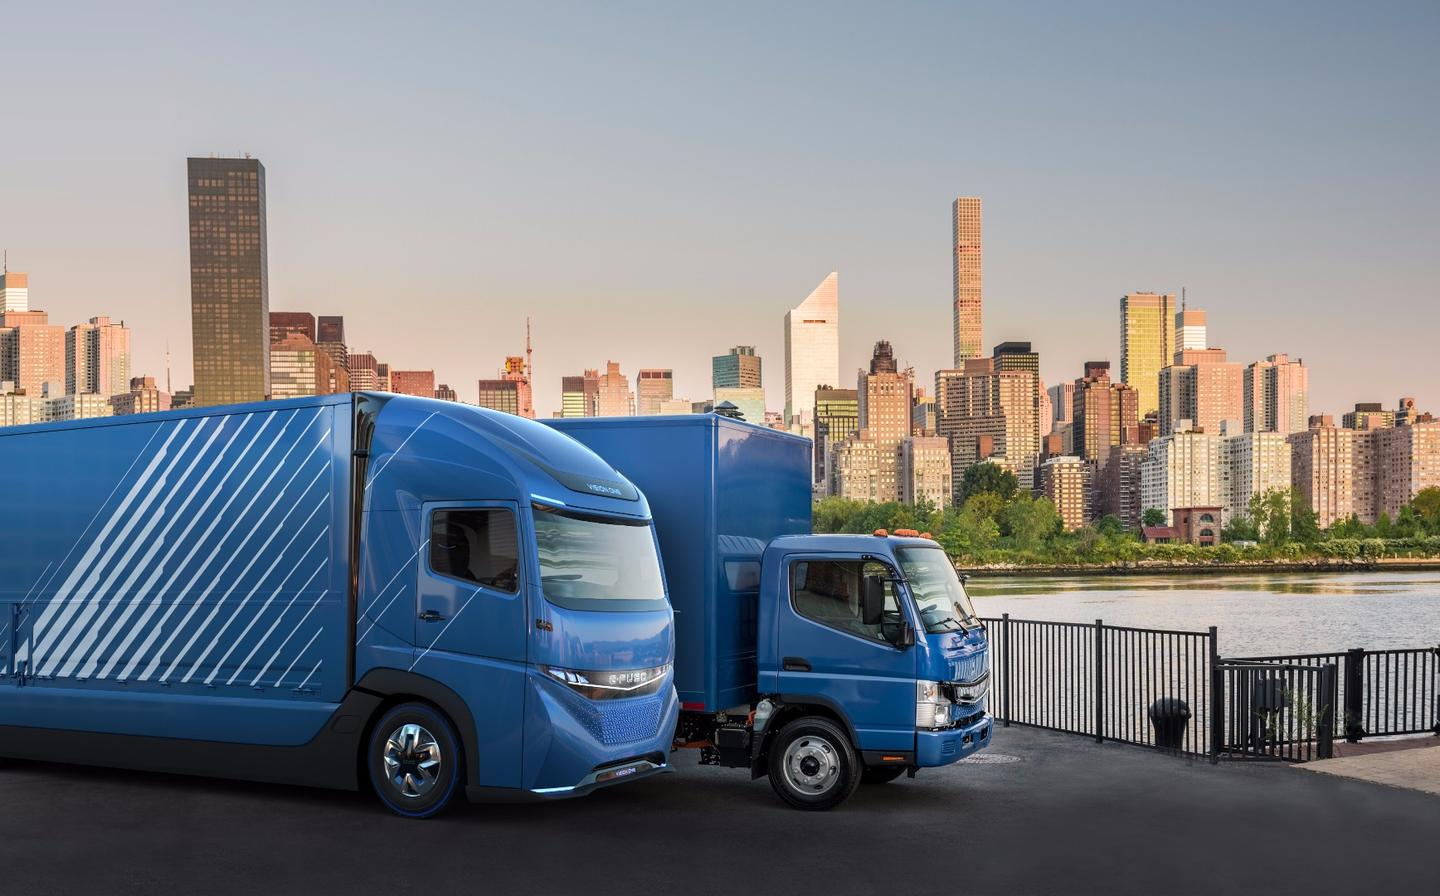 The E-Fuso Vision One sits alongside the eCanter truck, which launched in 2017